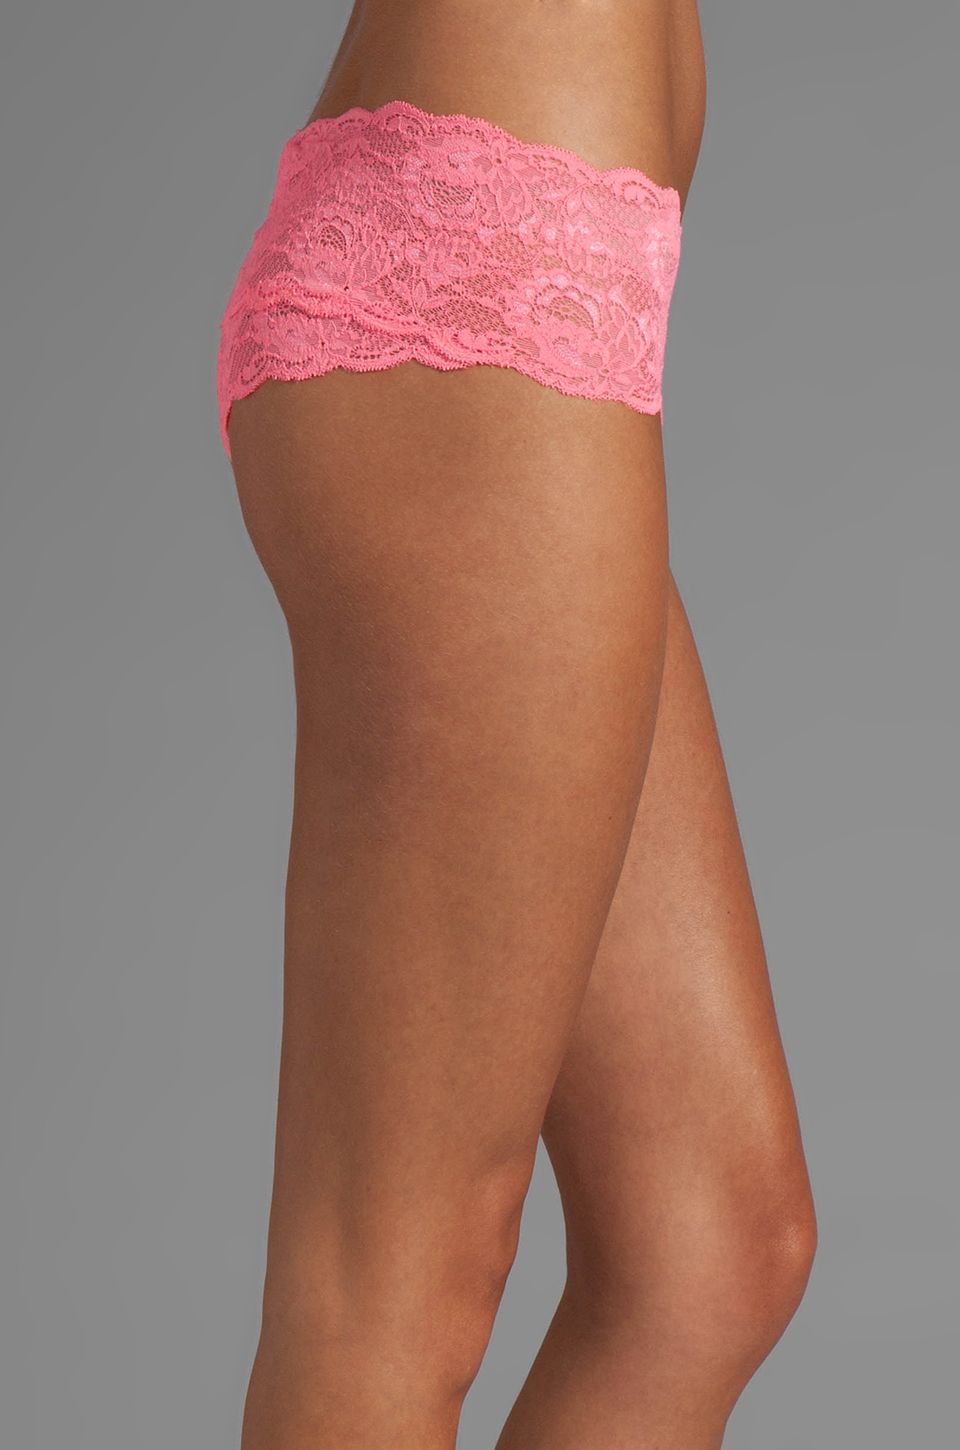 Cosabella Never Say Never Hottie Hot Pant in Neon Rose